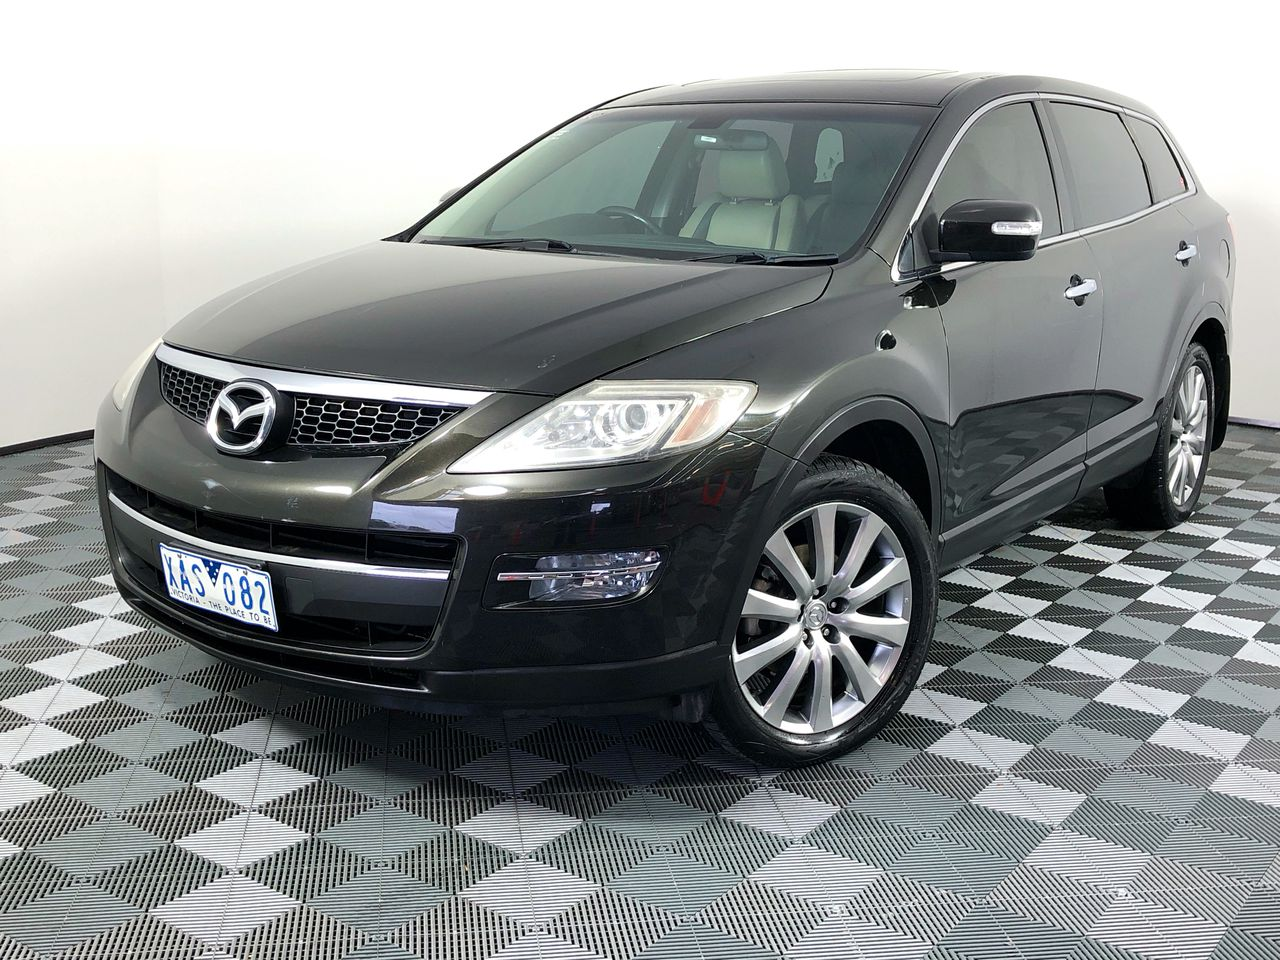 2009 Mazda CX-9 Luxury Automatic 7 Seats Wagon